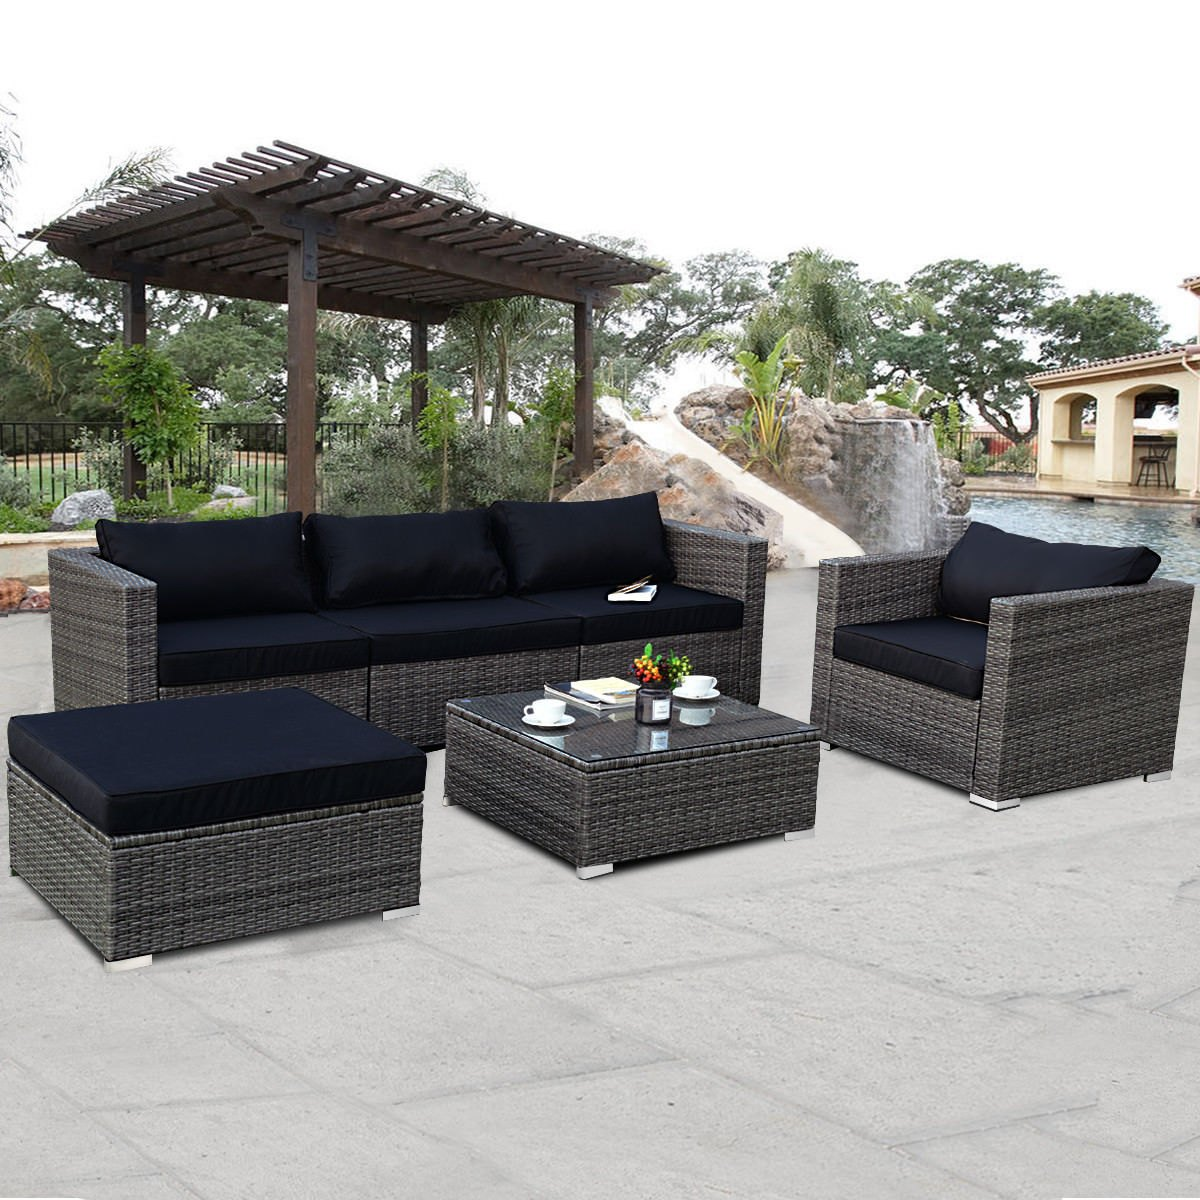 costway 6-piece rattan wicker patio furniture set sectional sofa couch yard EKJVVTC